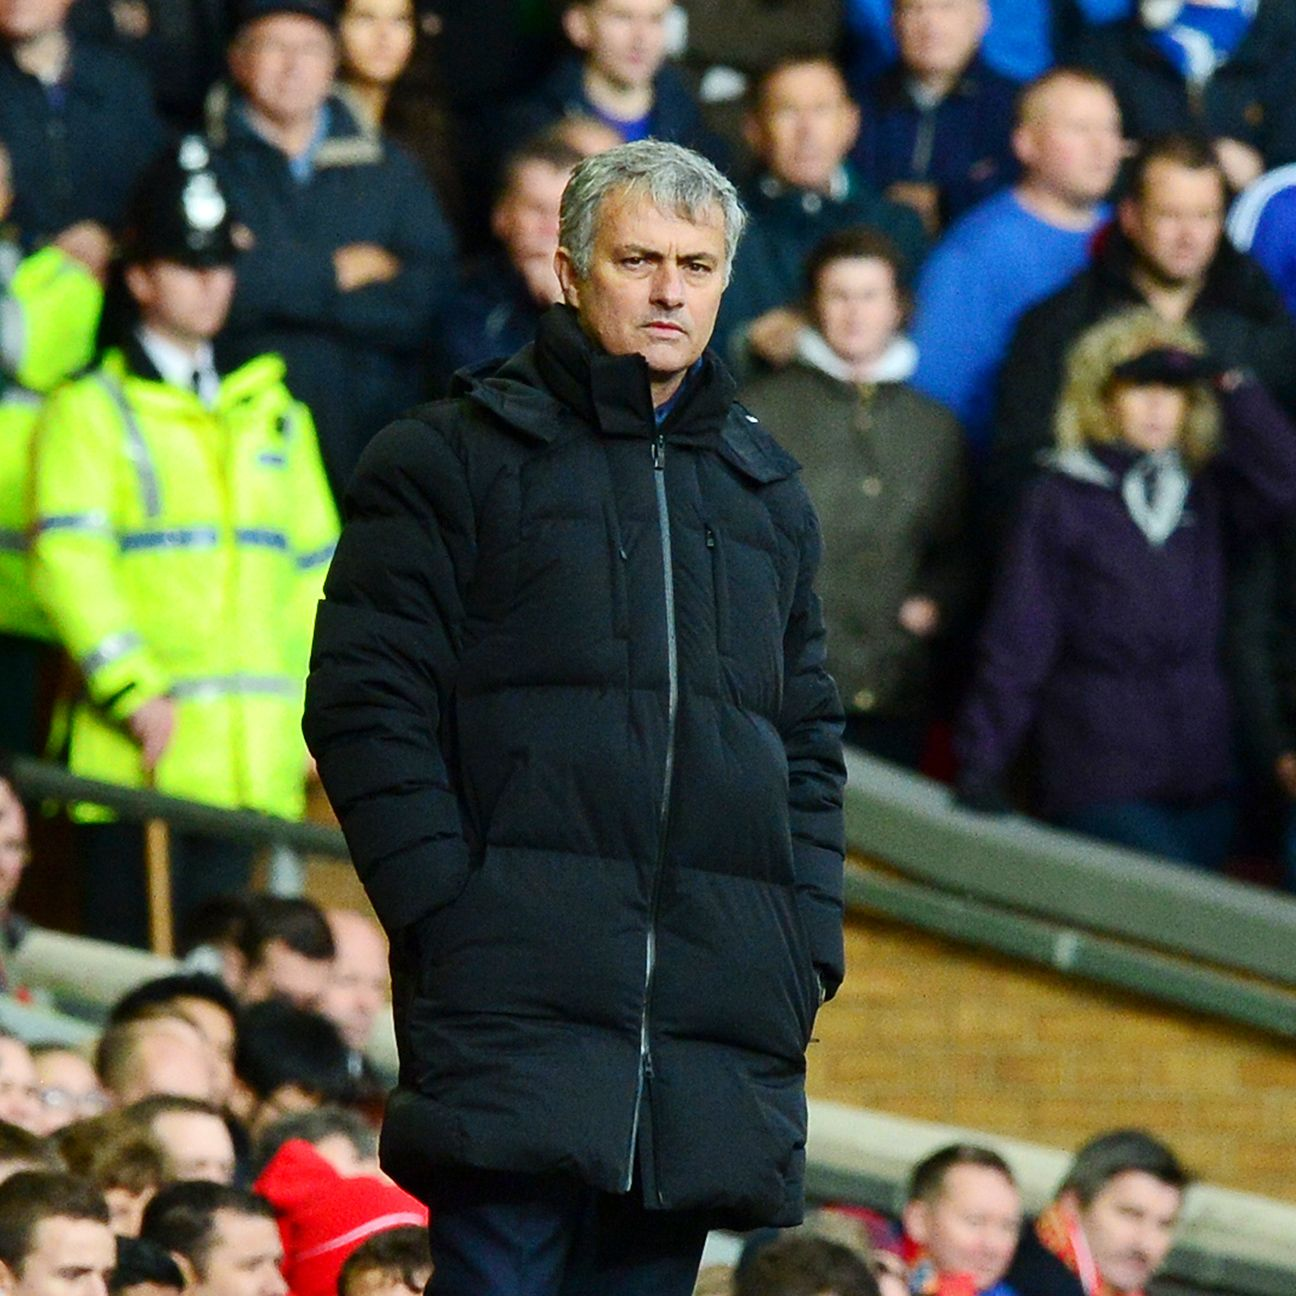 Jose Mourinho knows the threat posed by West Brom. The Baggies were unlucky to leave Stamford Bridge last season with just a draw.